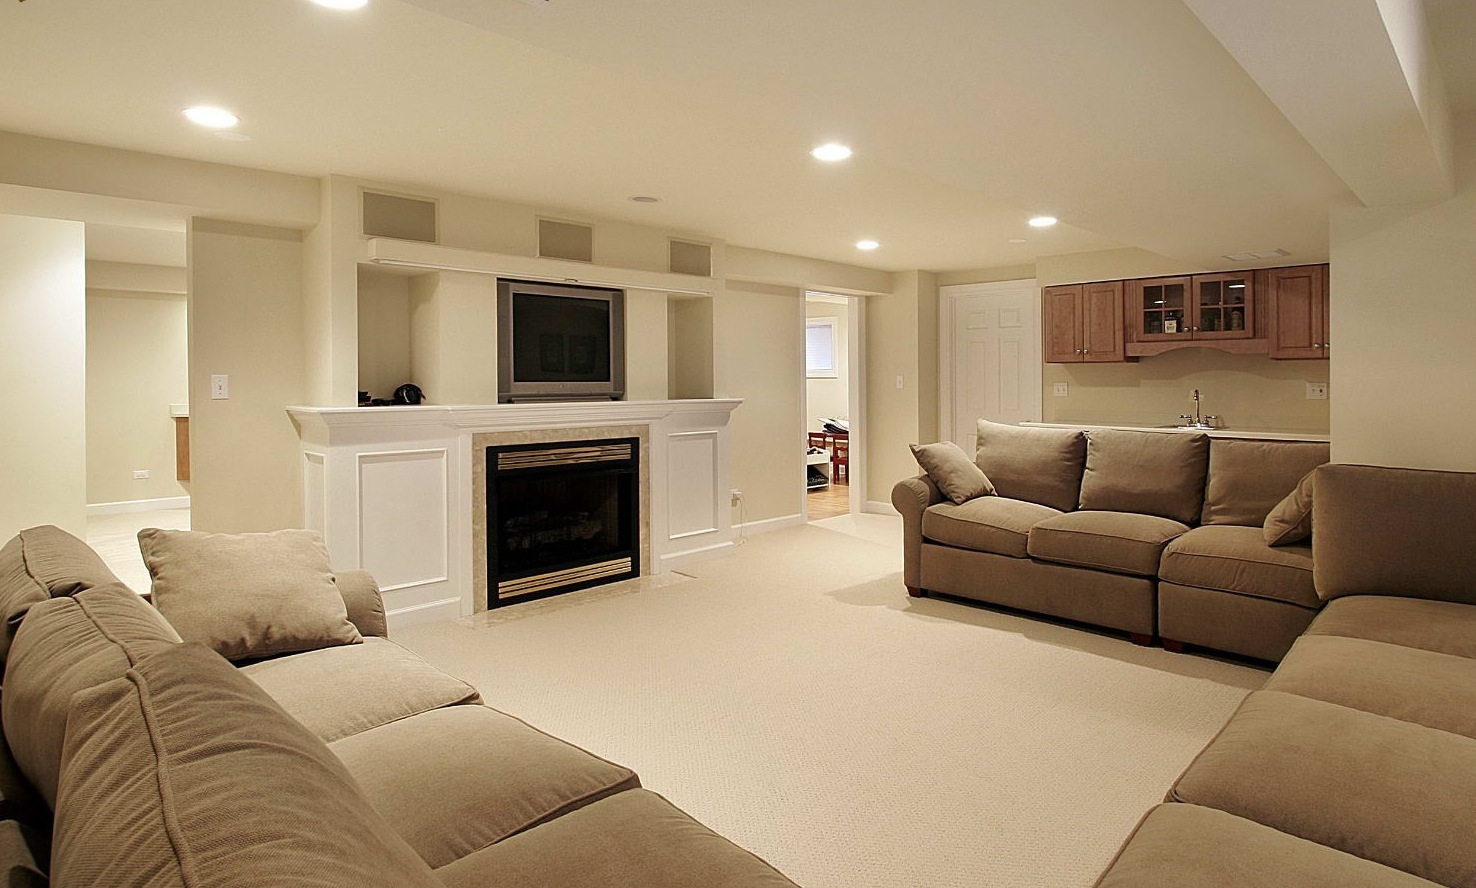 Remodeling Basement Ideas Inspiration 30 Basement Remodeling Ideas & Inspiration Decorating Inspiration